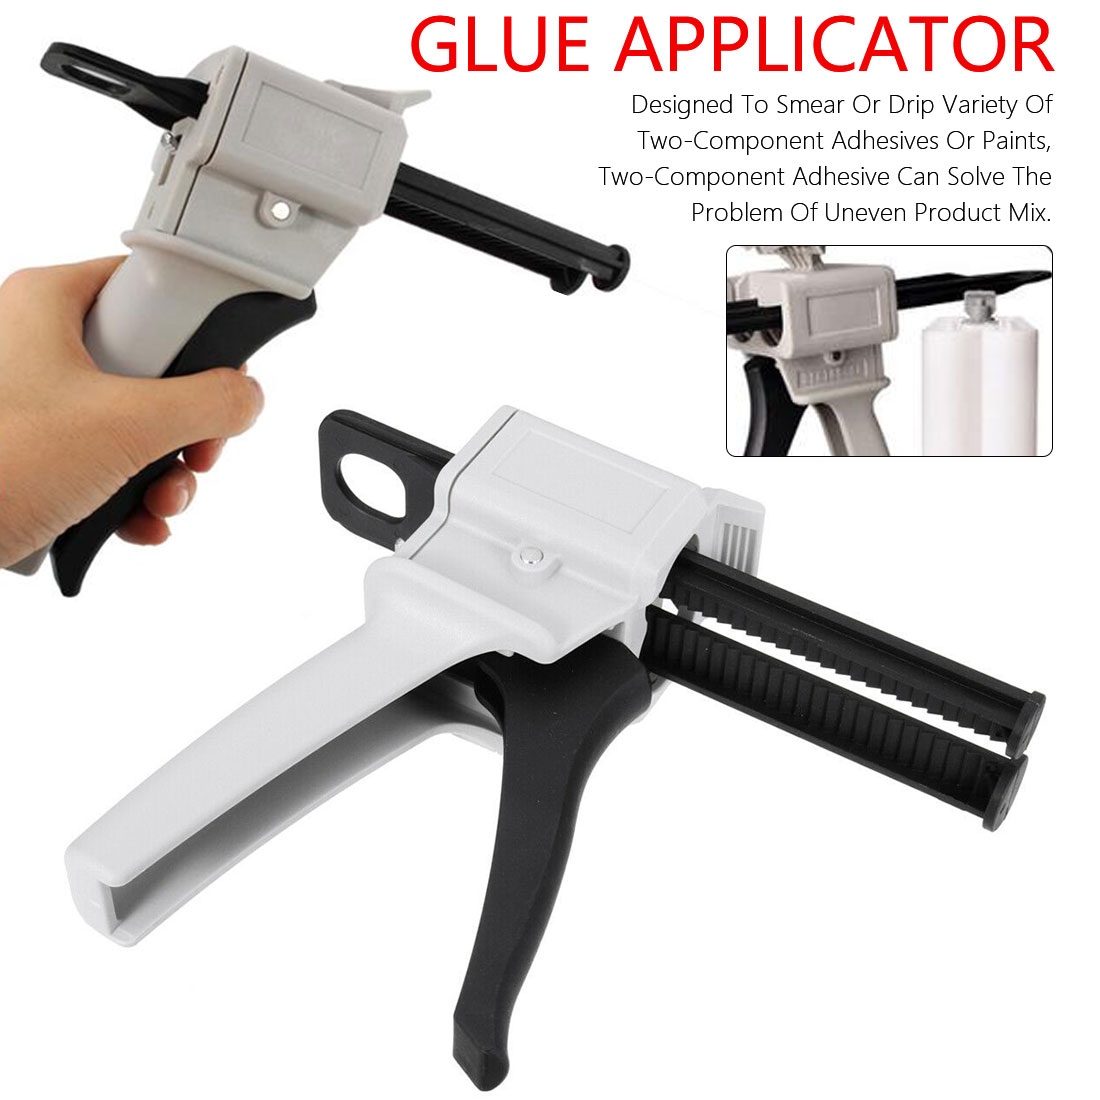 Dispensing Gun Glue Gun Manual Applicator 30ml Epoxy Resin Acrylic Glue Mix